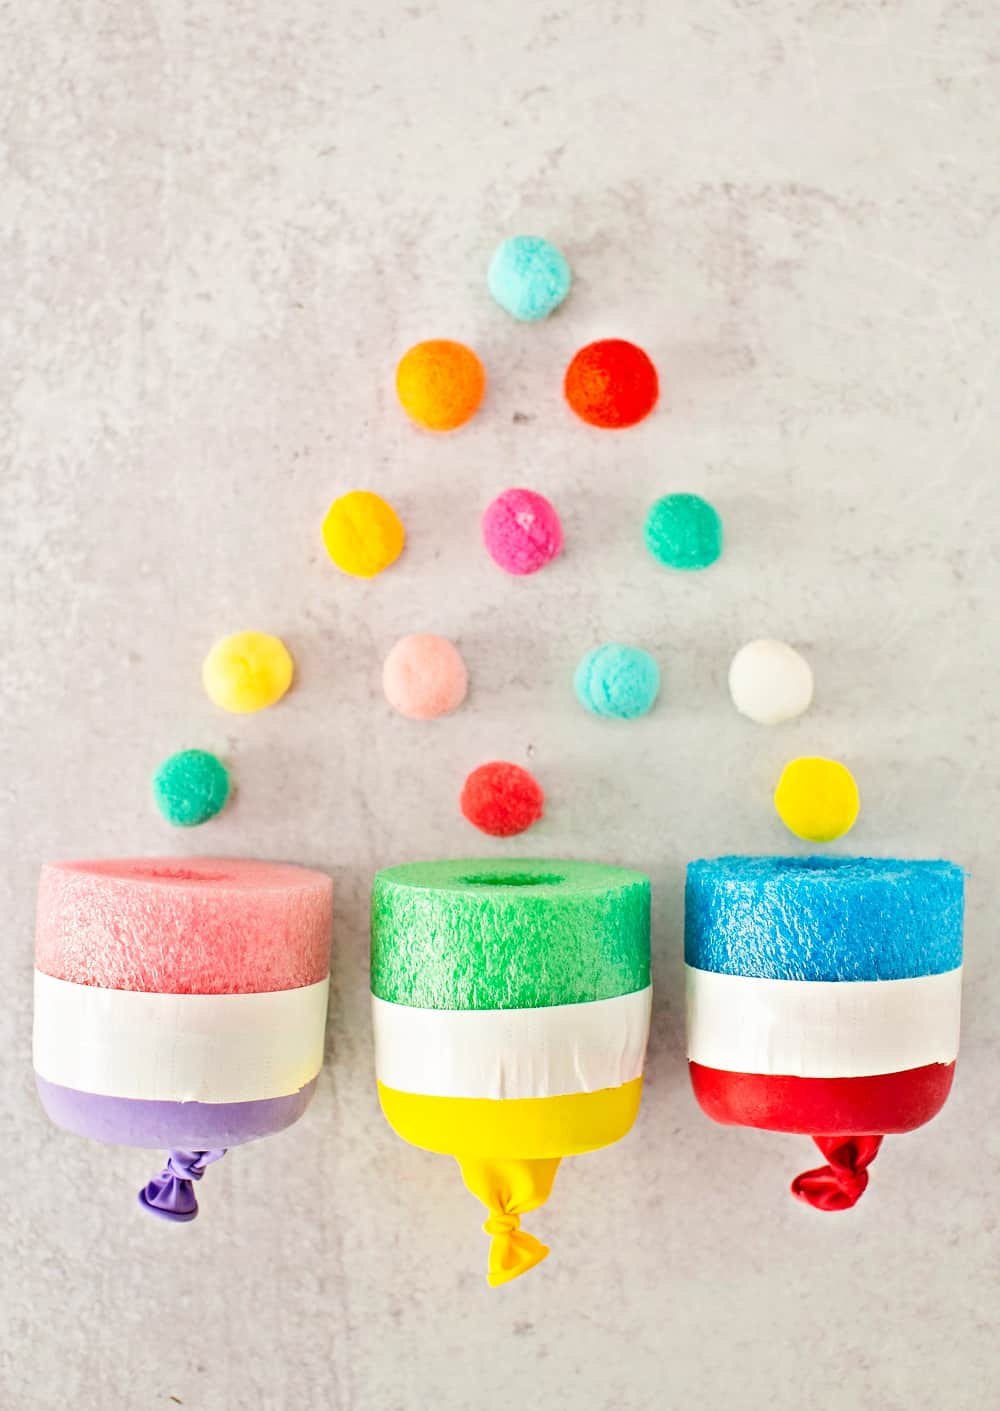 3 pom pom noodle shooters with pom poms coming out